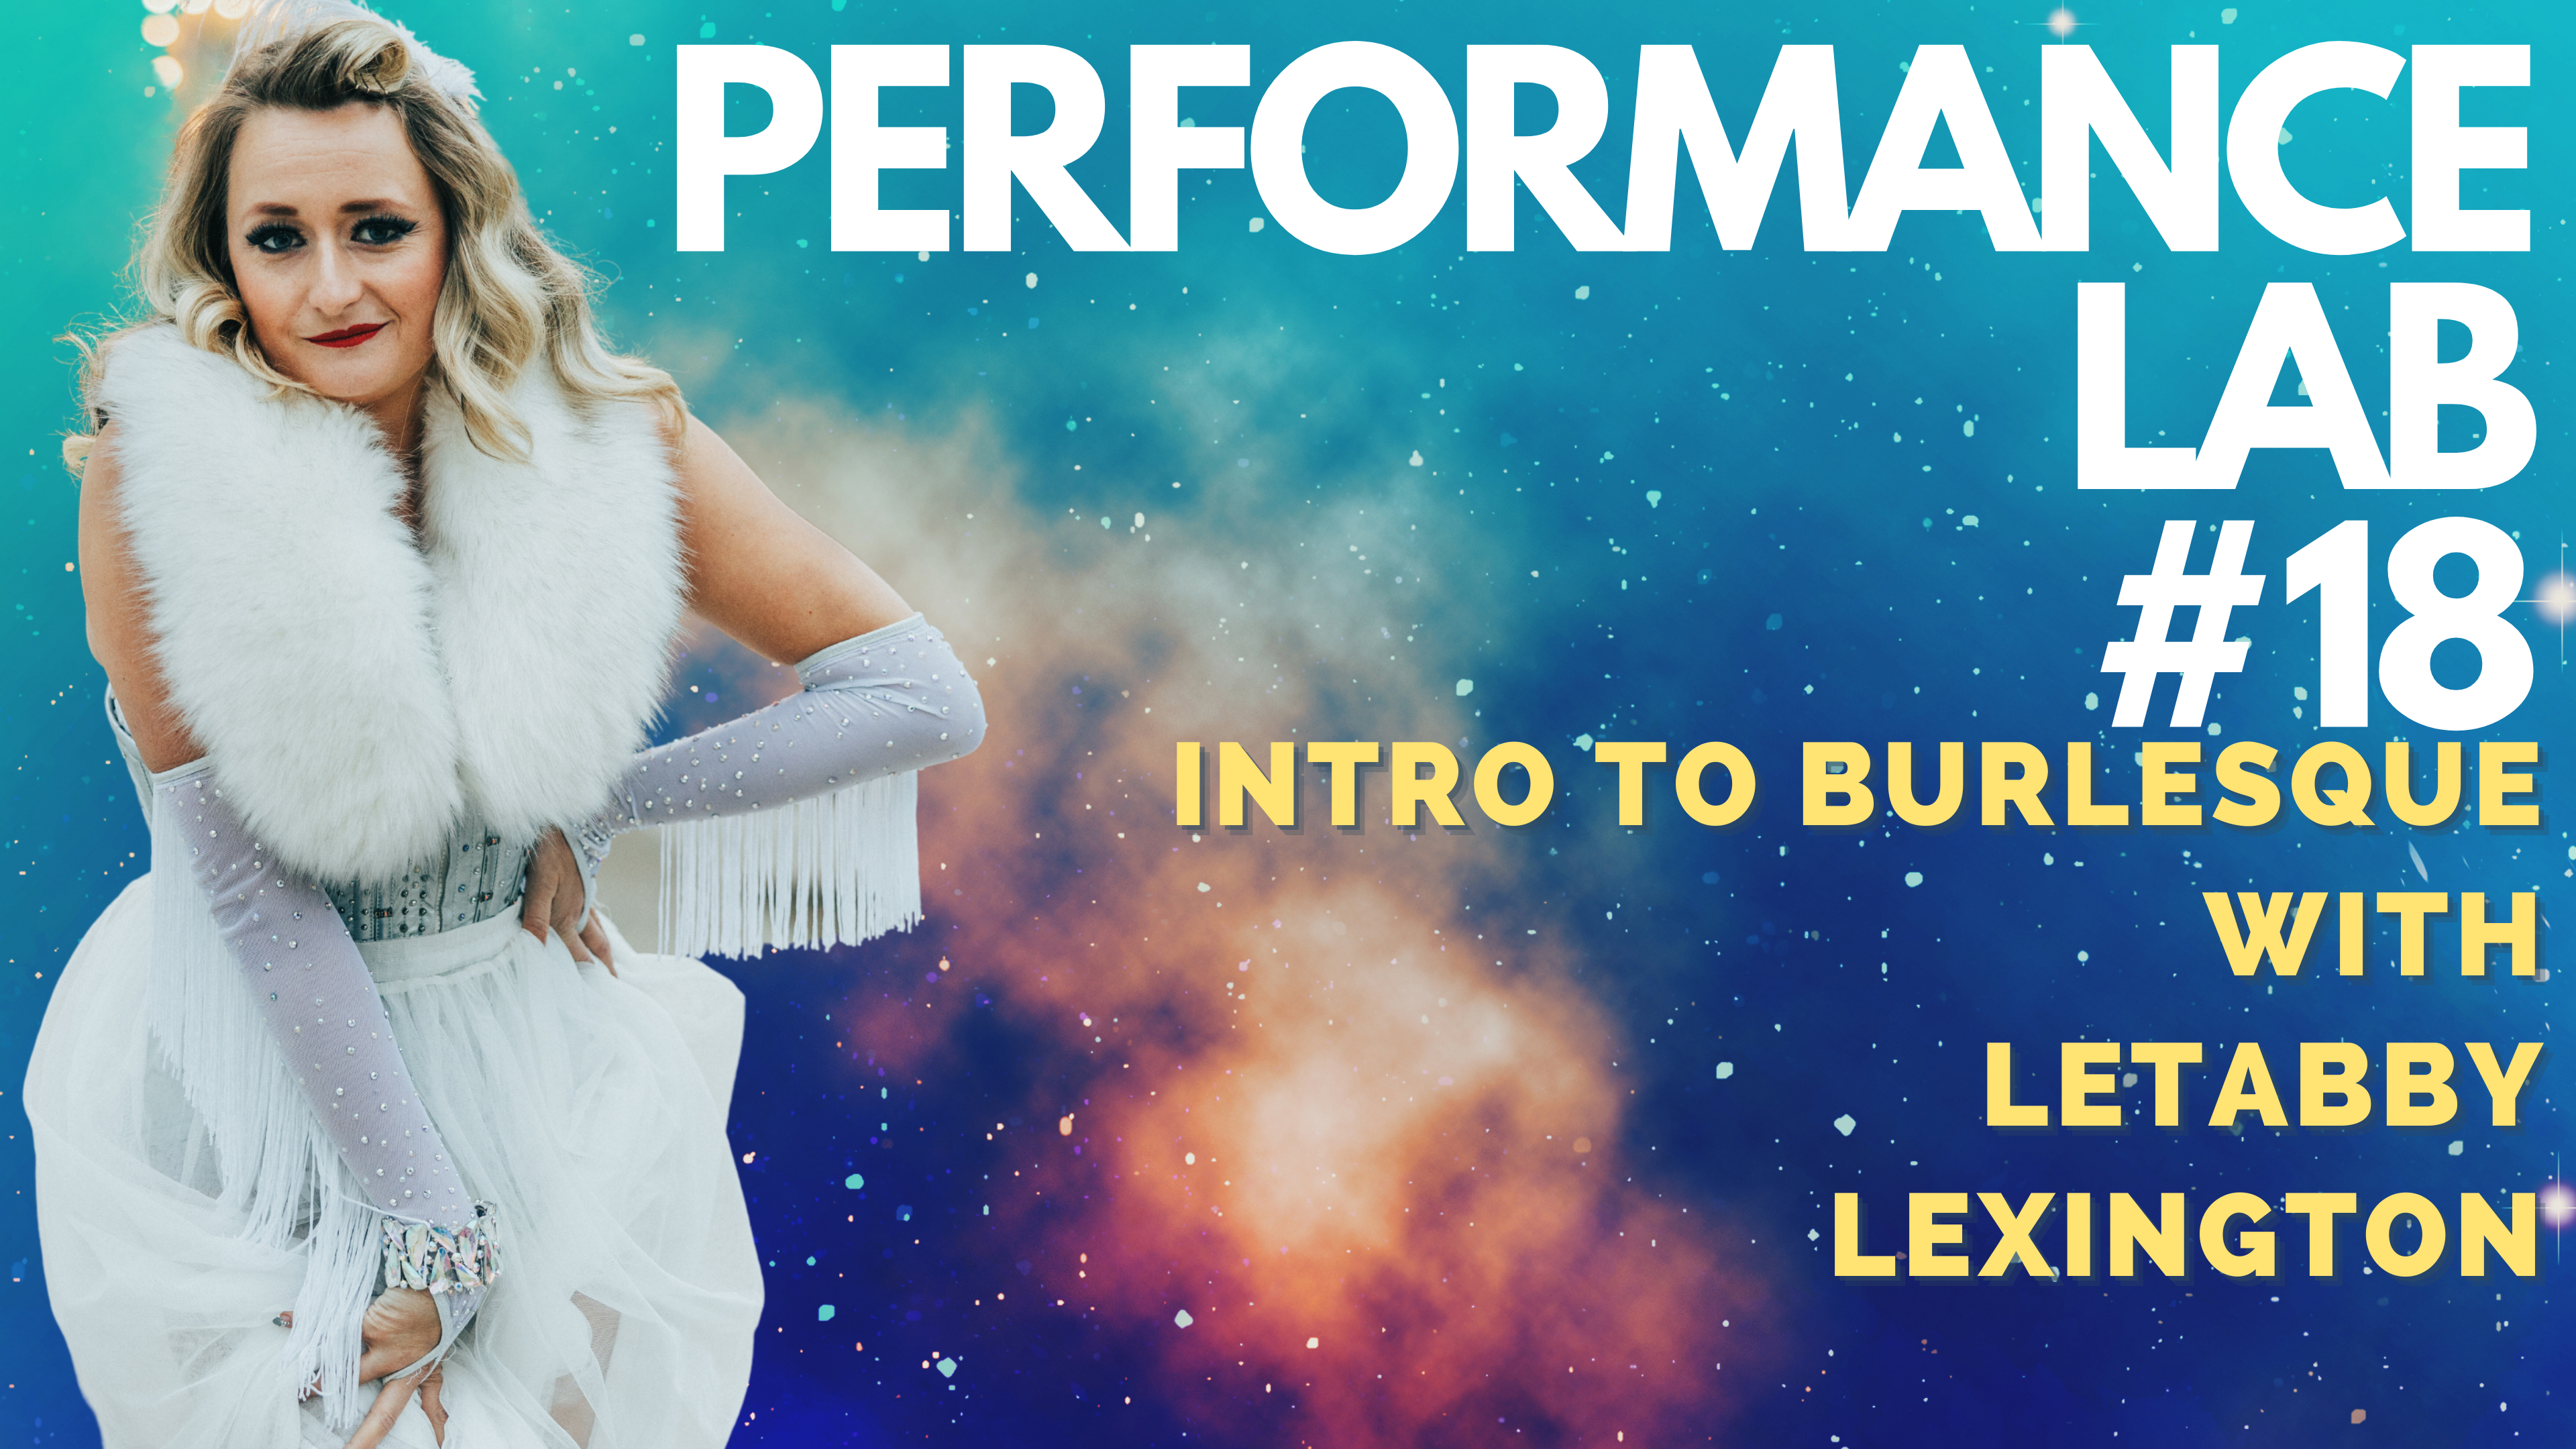 """LeTabby Lexington, with the text Performance Lab #18 Intro to burlesque with LeTabby Lexington, Link in Bio. Letabby and text are layered on a background of a bright blue, indigo and orange galaxy. """""""